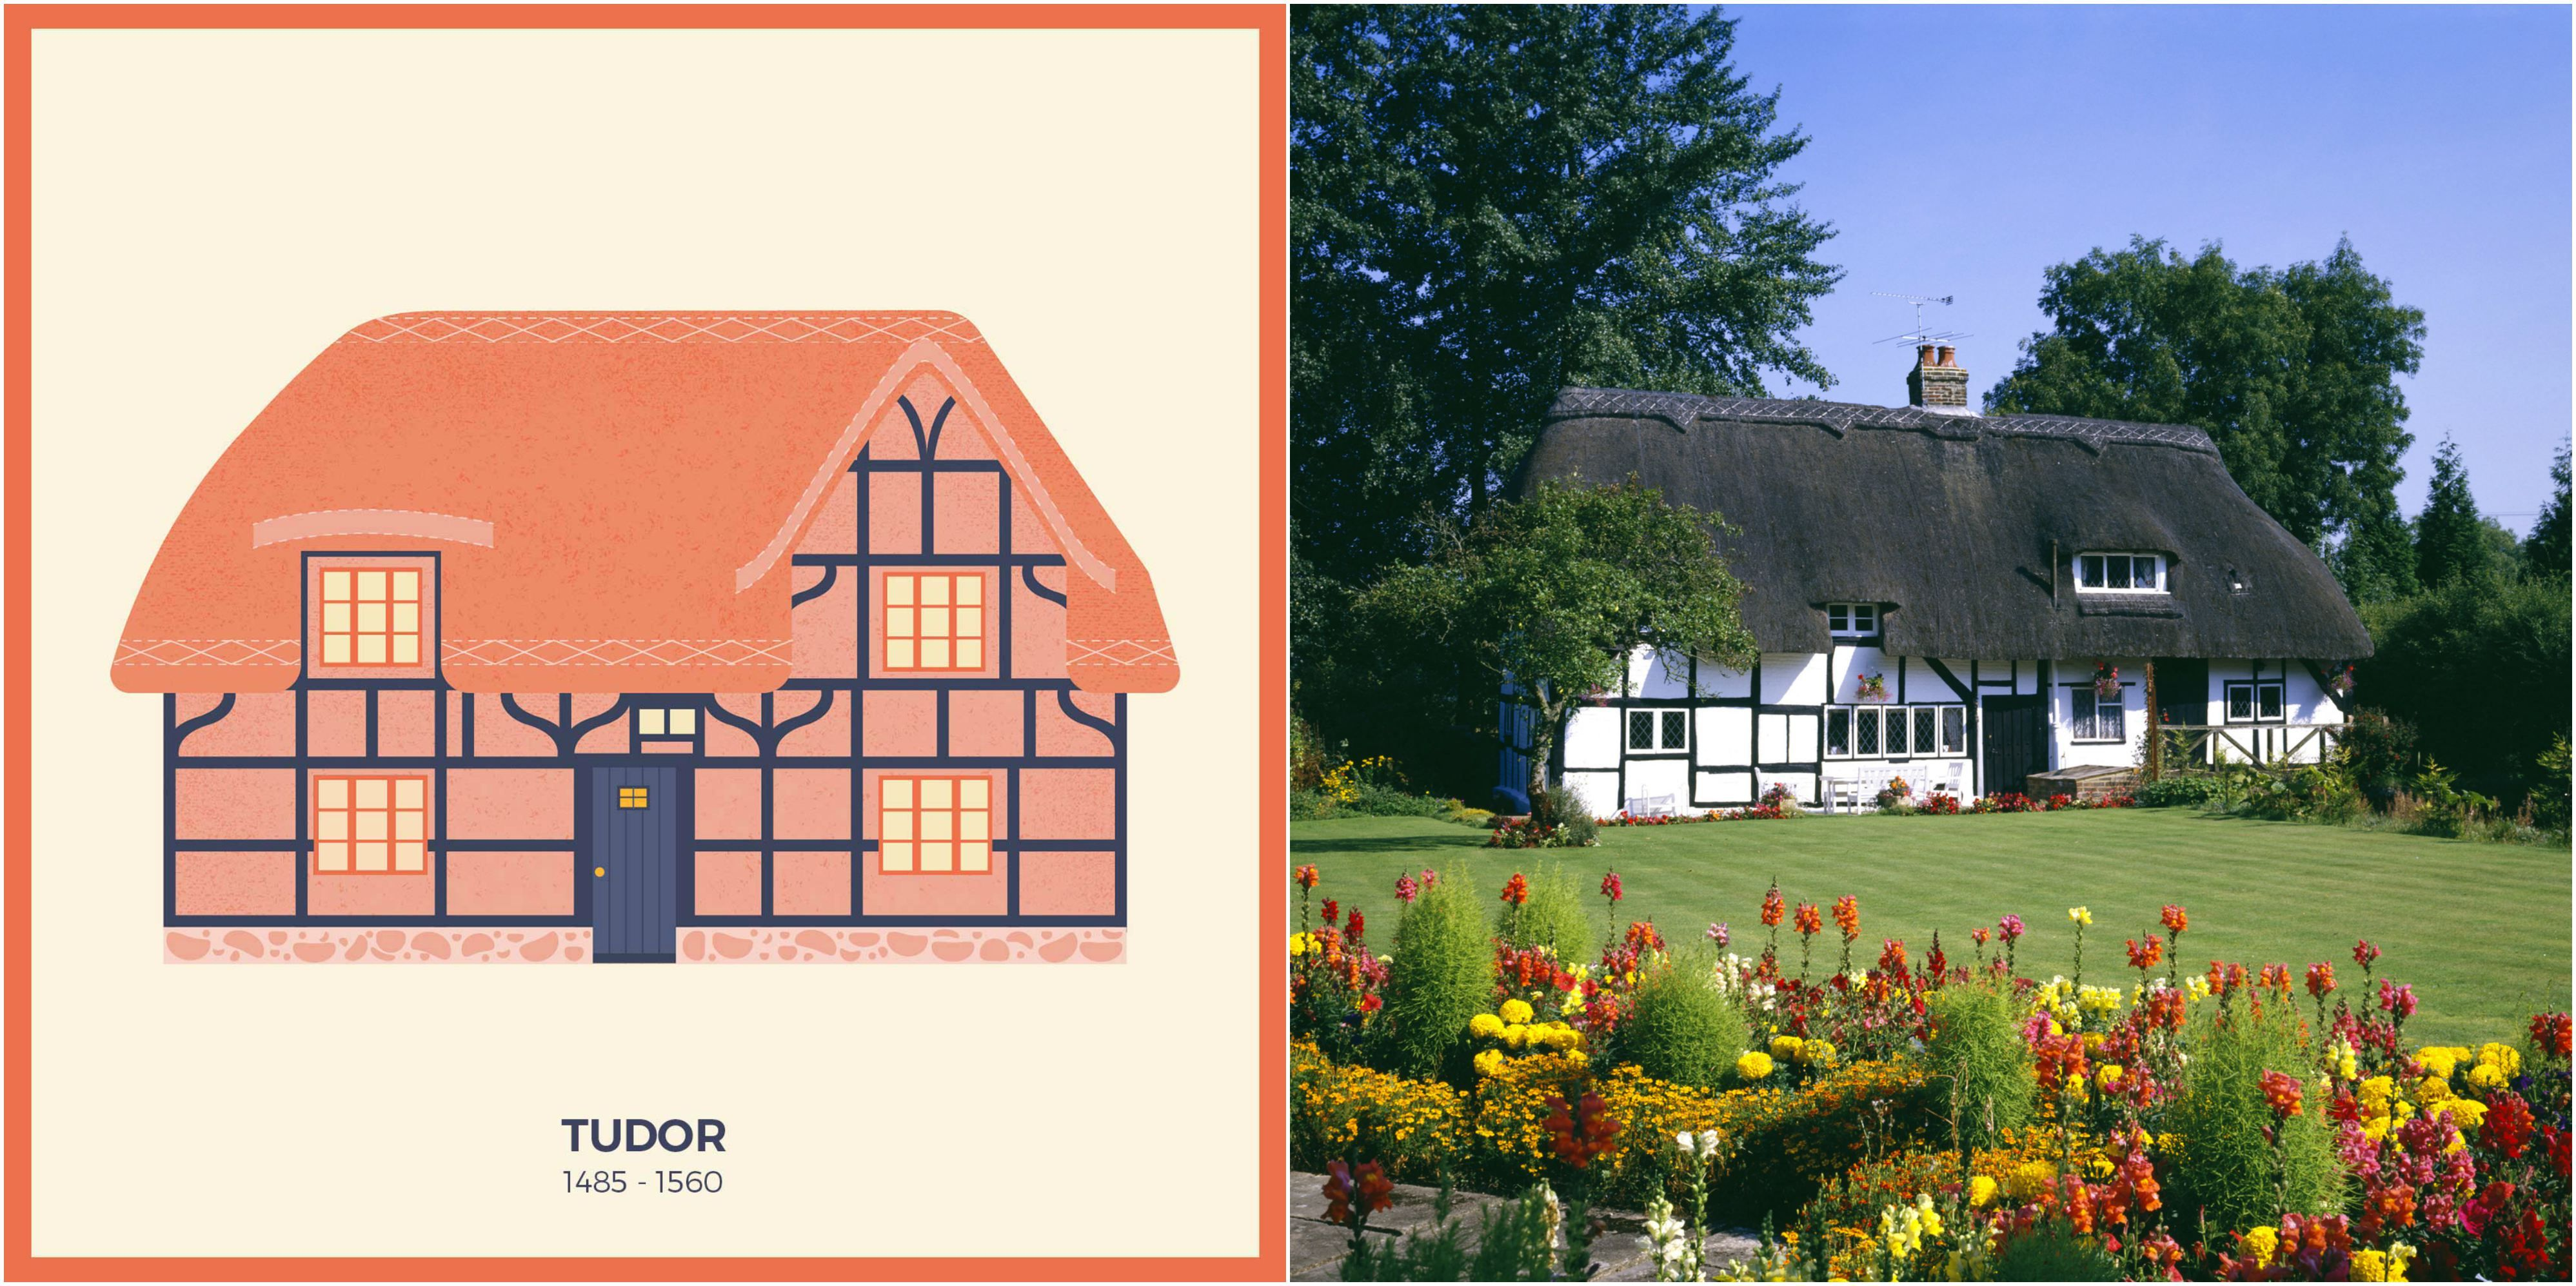 Which house do you live in 13 illustrations depict british houses through the ages